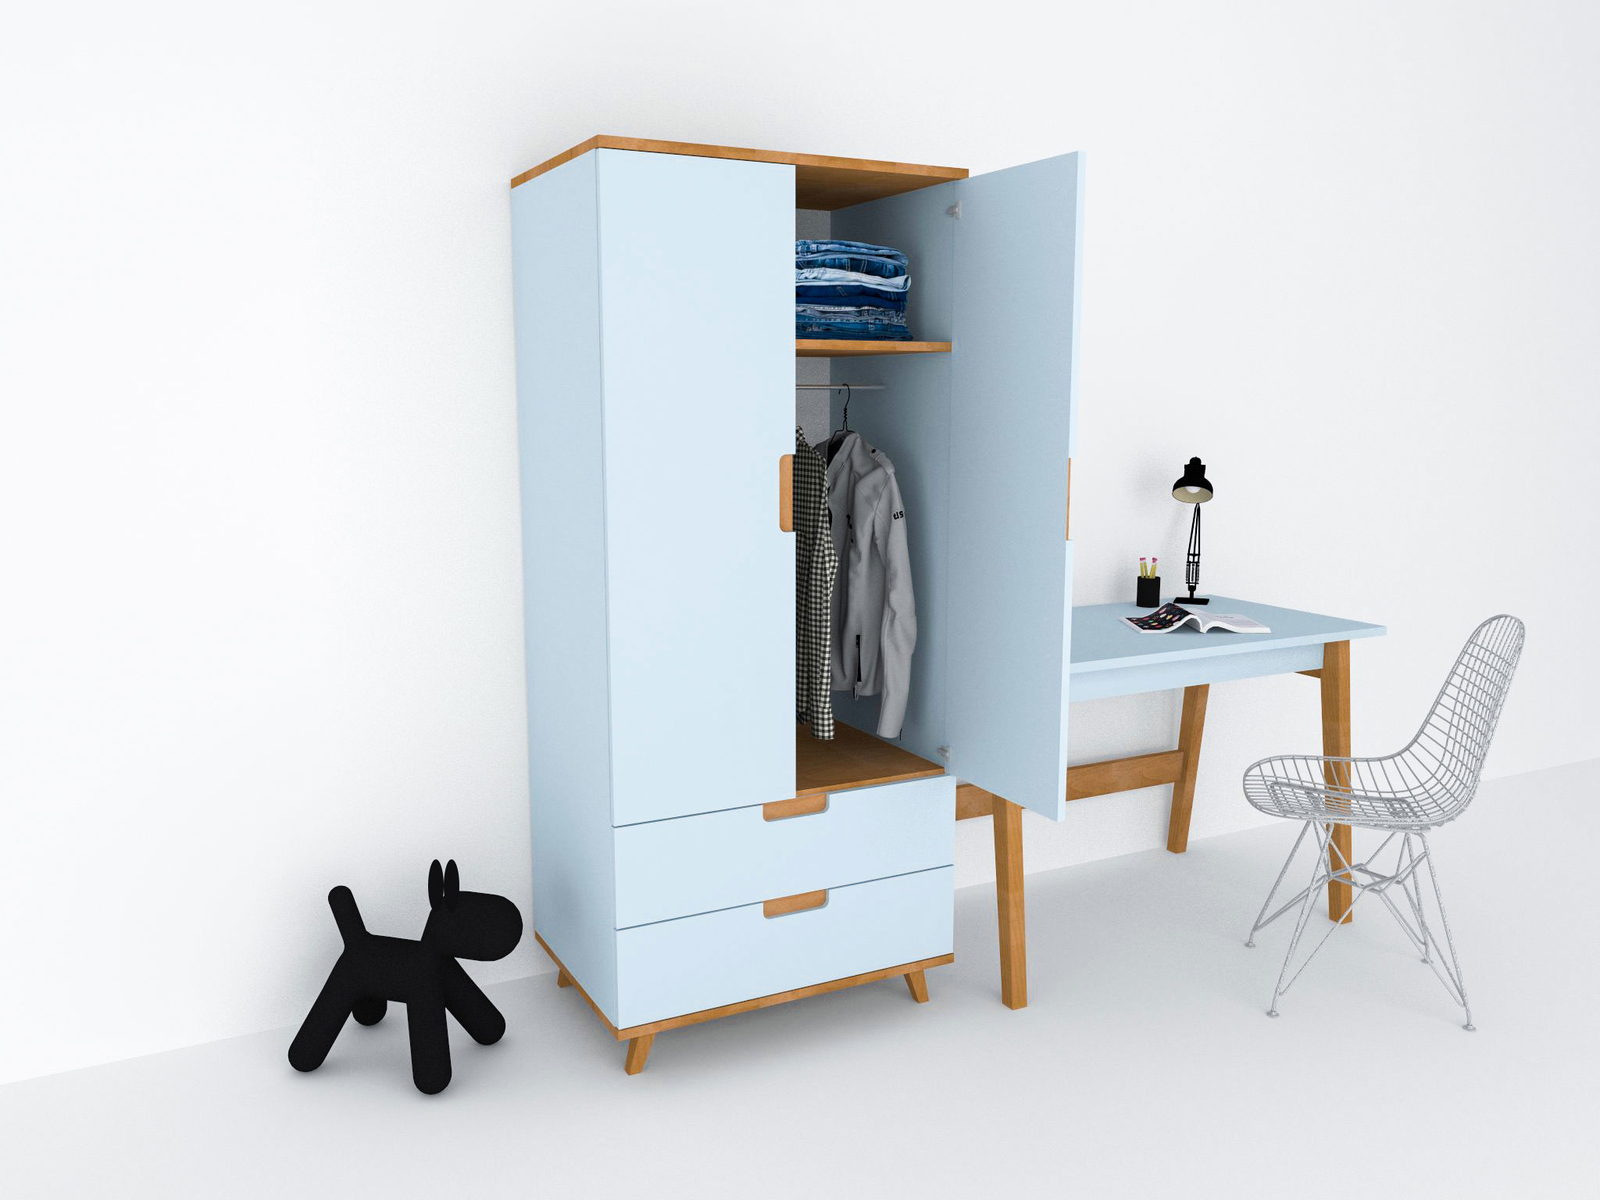 gro er kinder kleiderschrank colorland von colorland. Black Bedroom Furniture Sets. Home Design Ideas